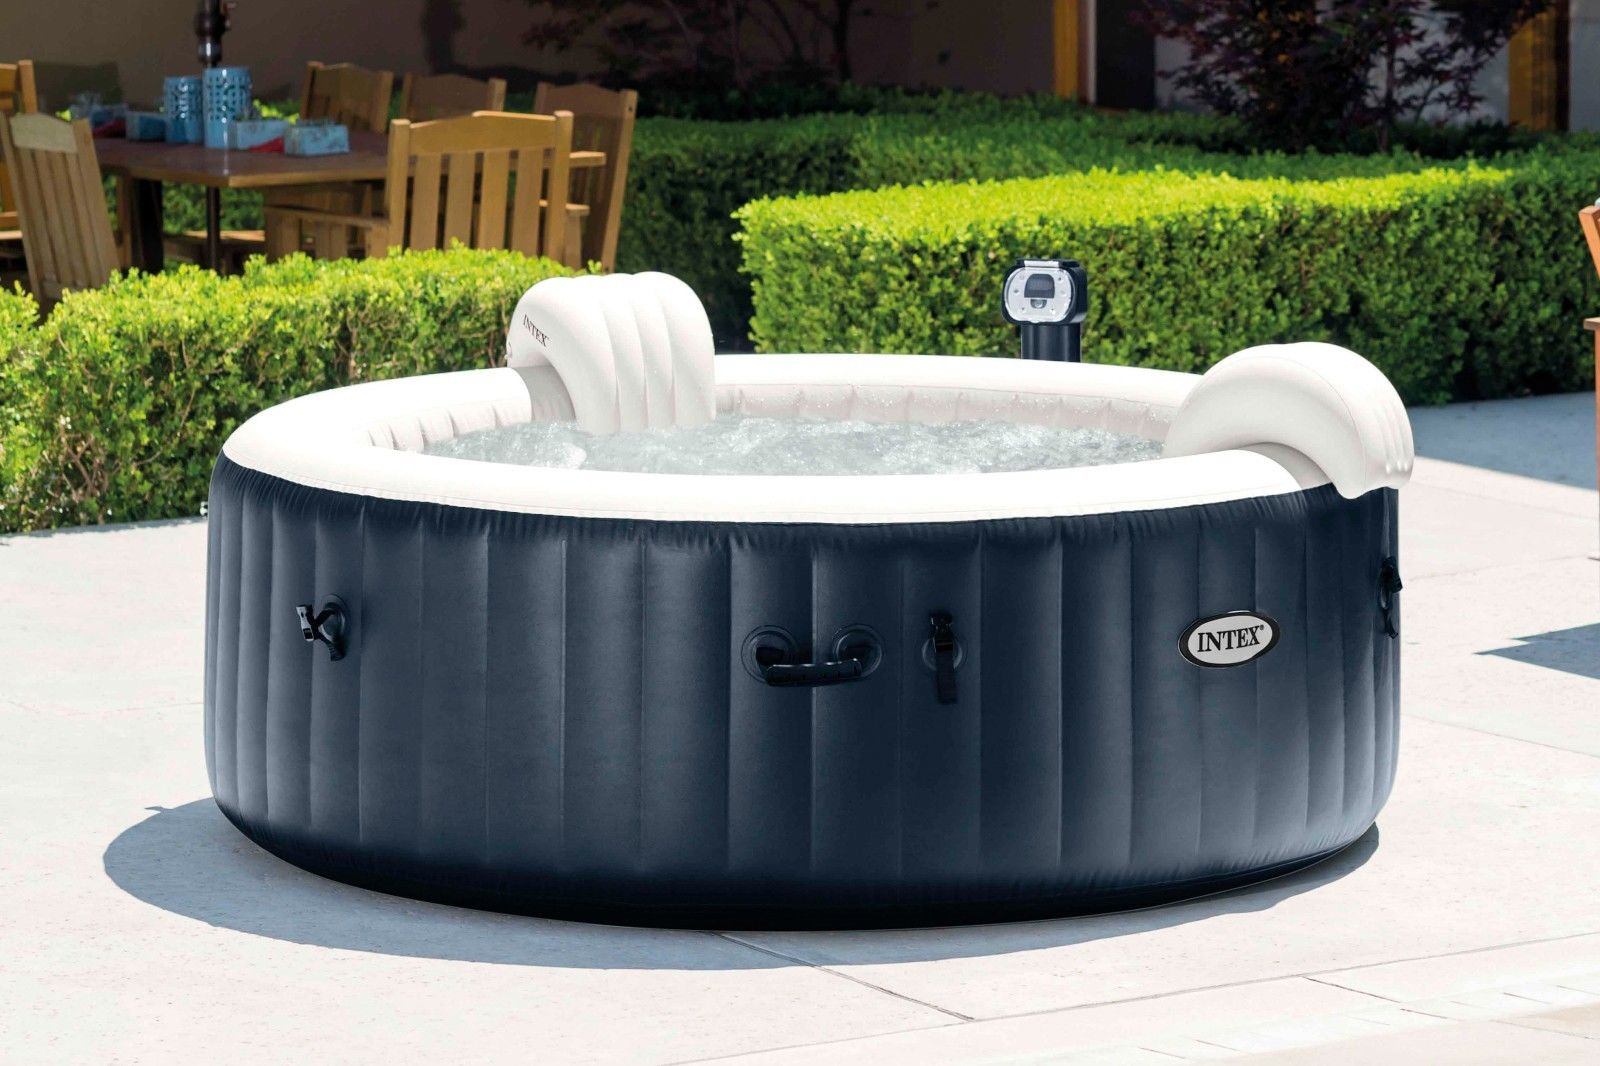 Jacuzzi Brand Pool Pump Intex Pure Spa 4 Person Inflatable Portable Heated Bubble